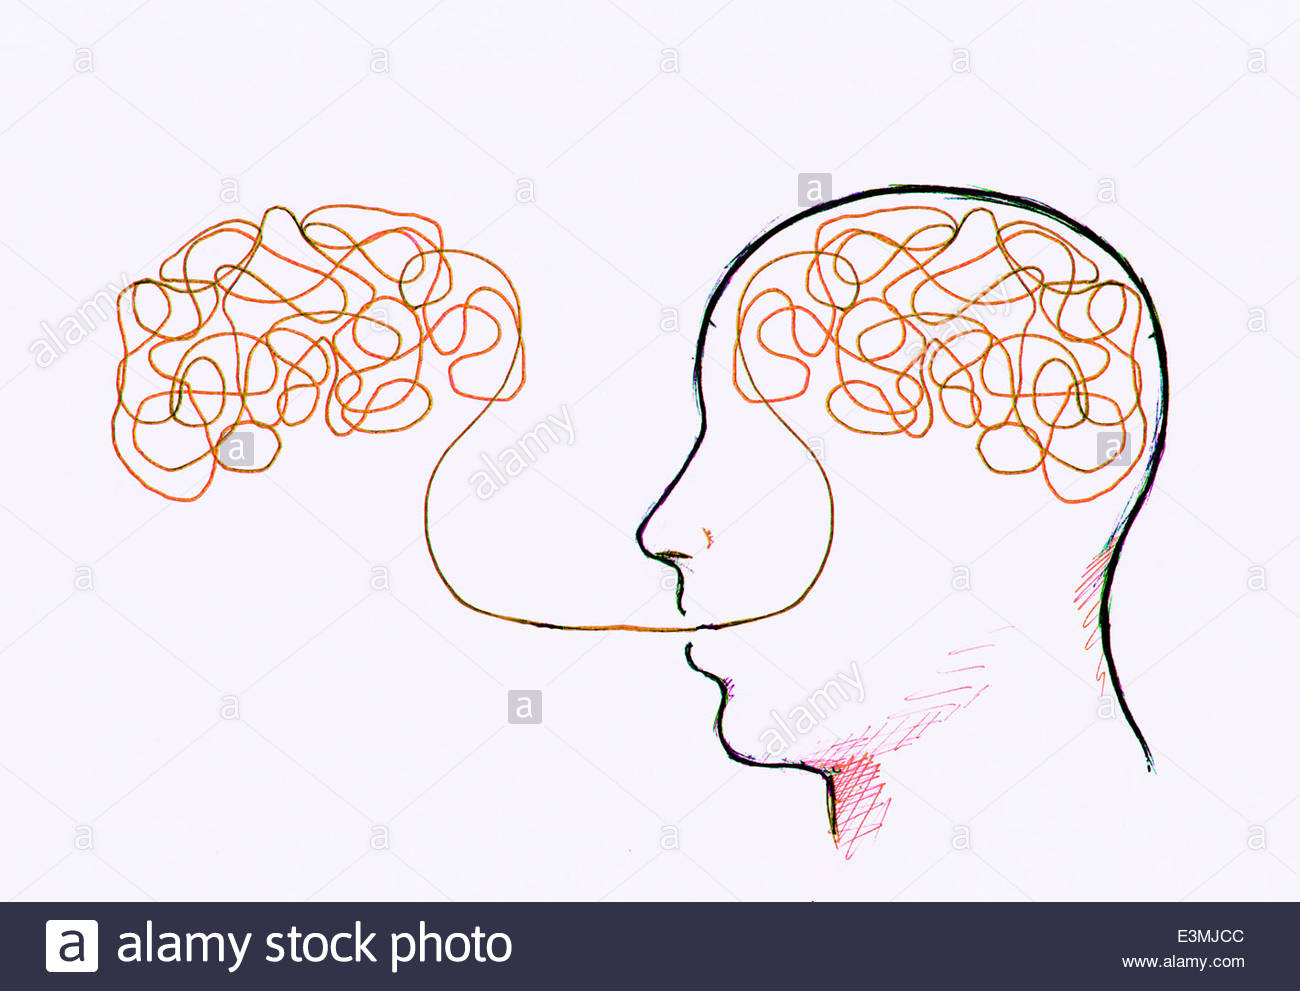 Tangled line inside man's head connected to tangled line outside - Stock Image